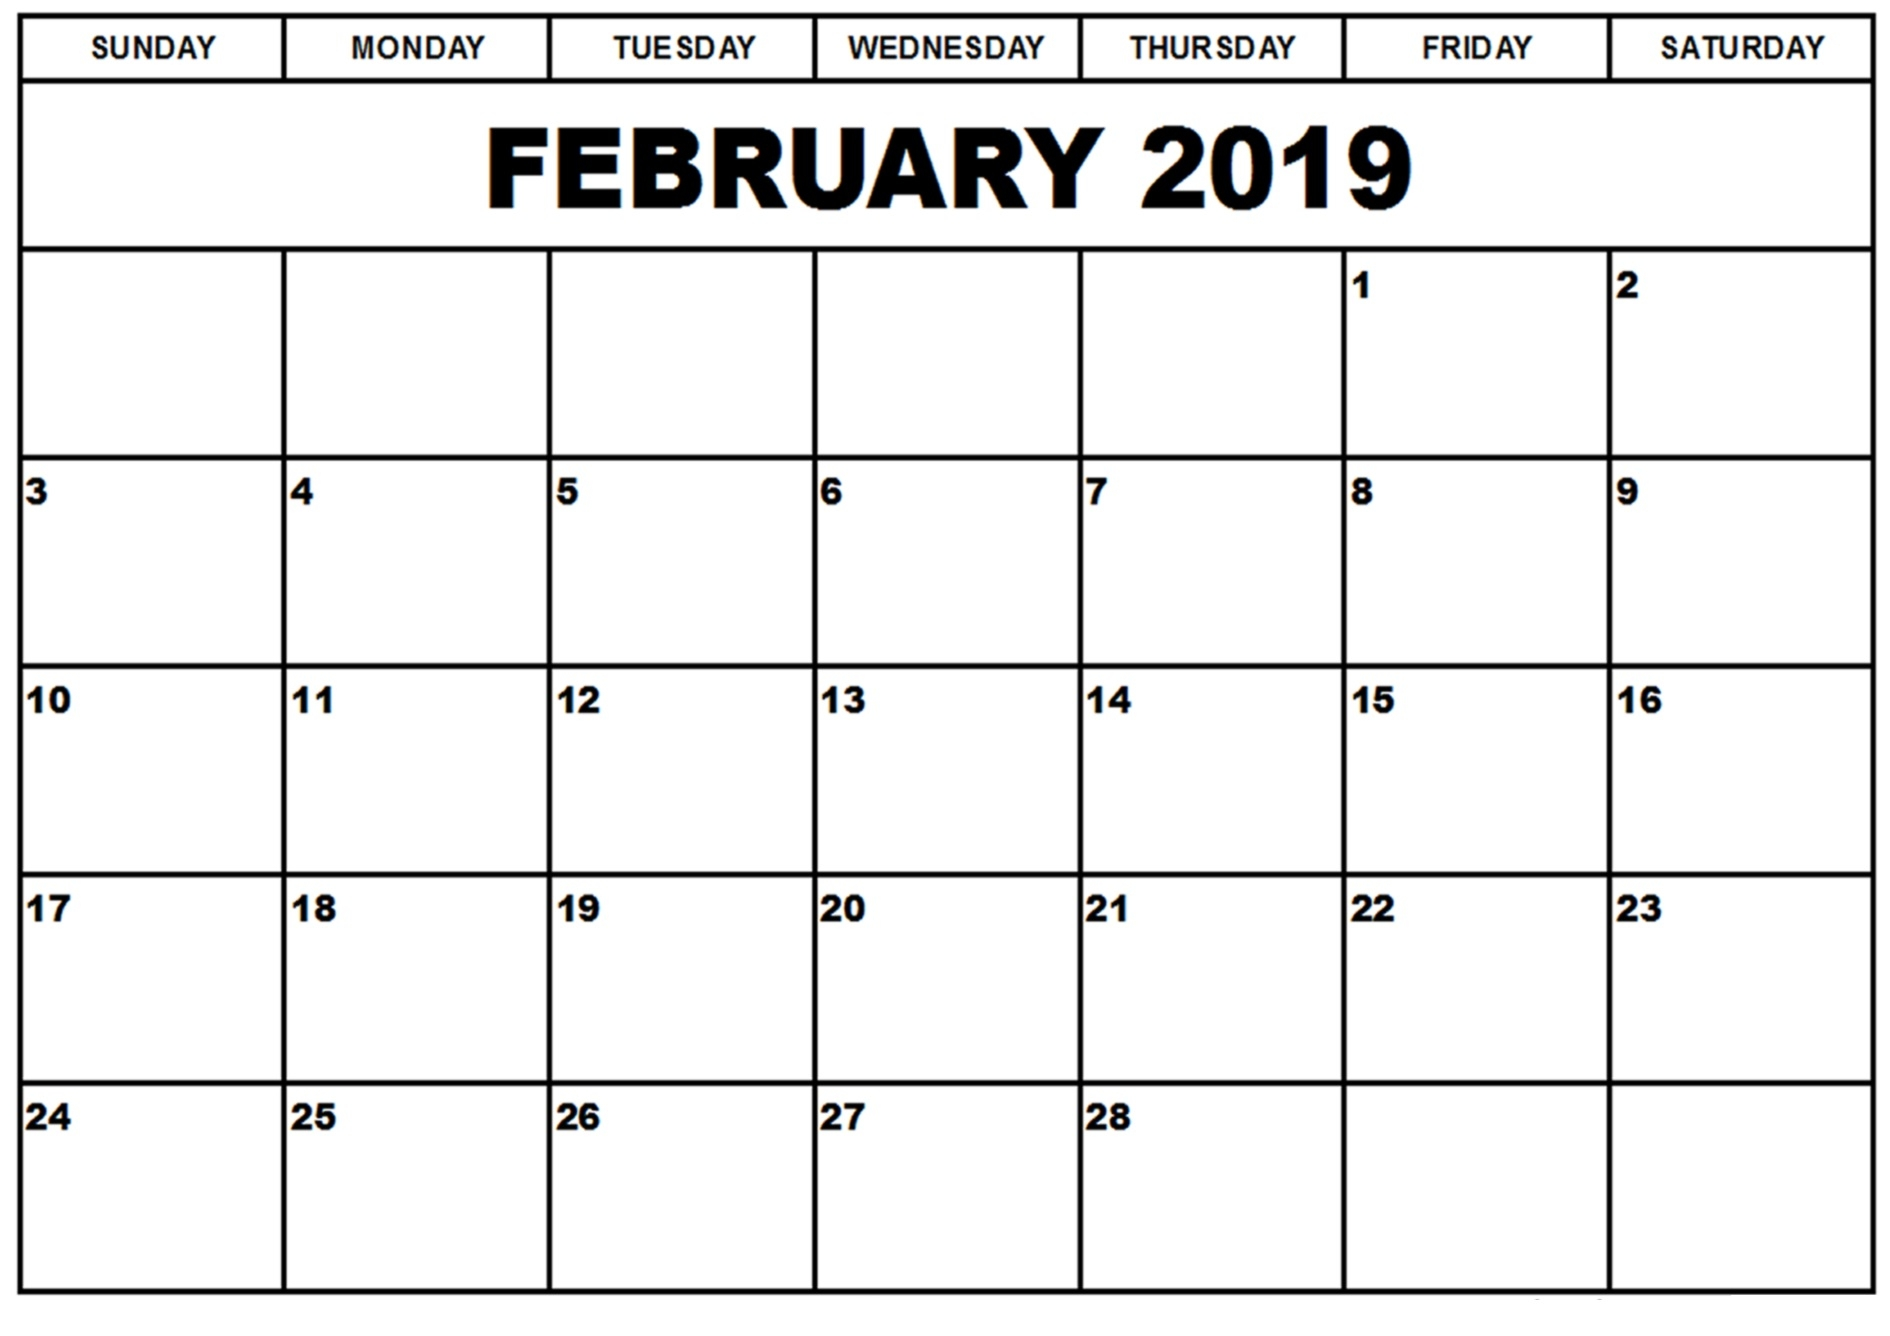 february 2019 calendar printable templates this site provides::Blank February 2019 Calendar